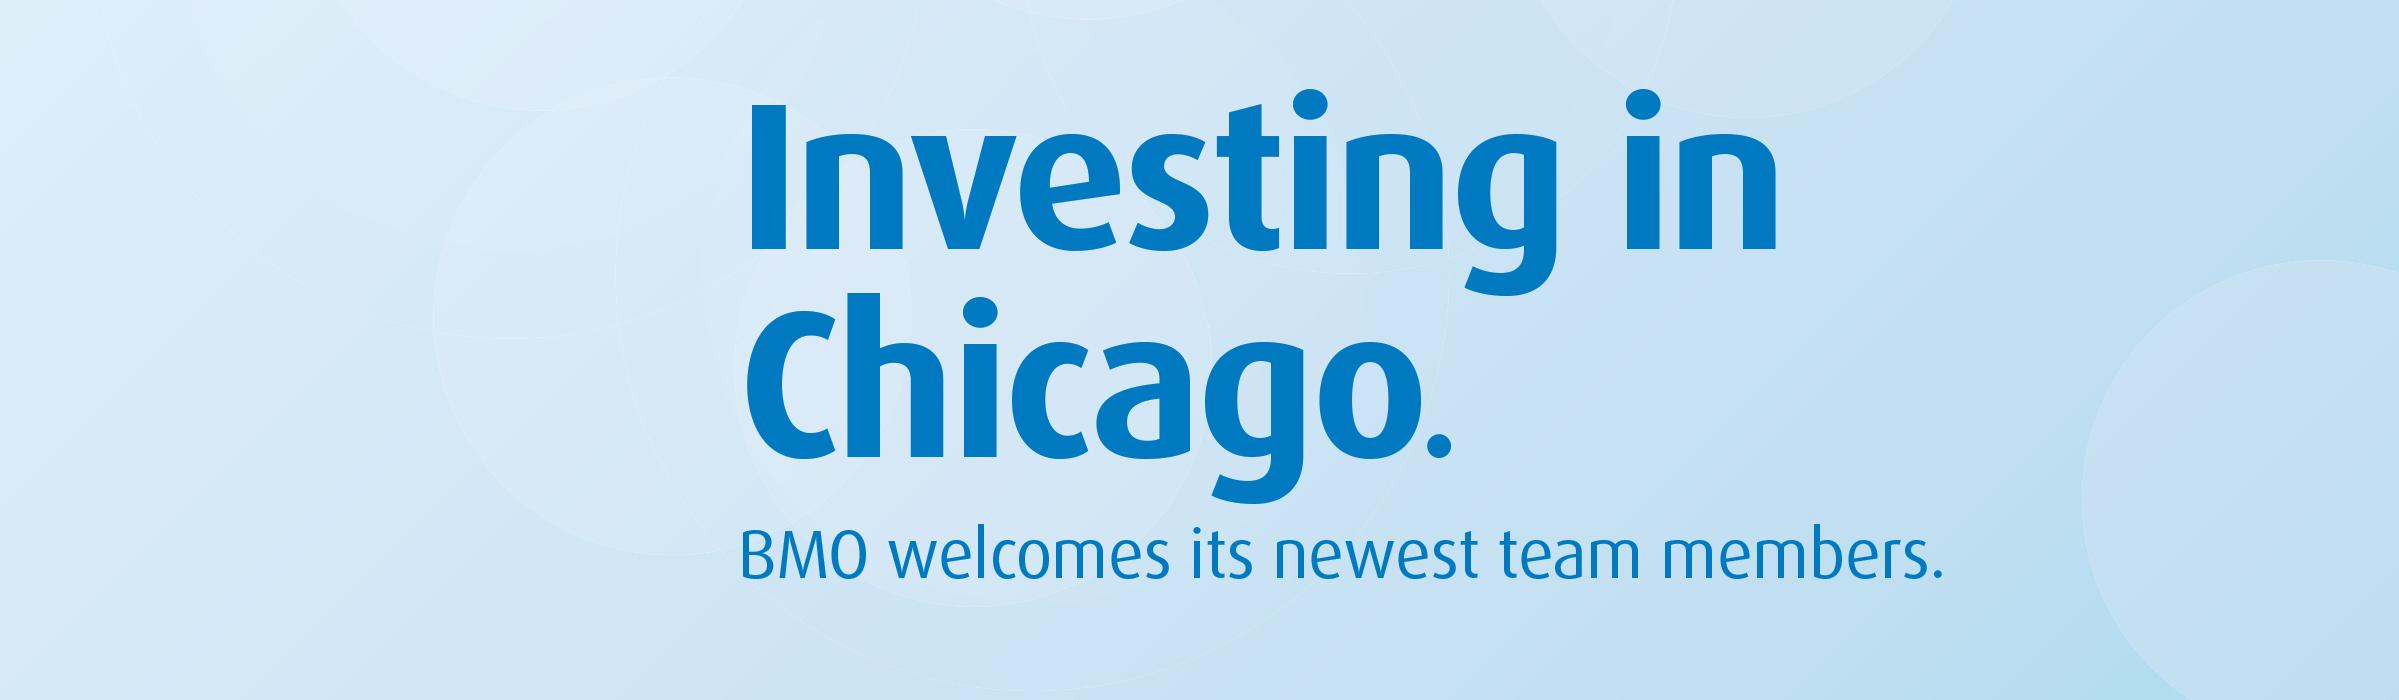 BMO's new banking team in Chicago